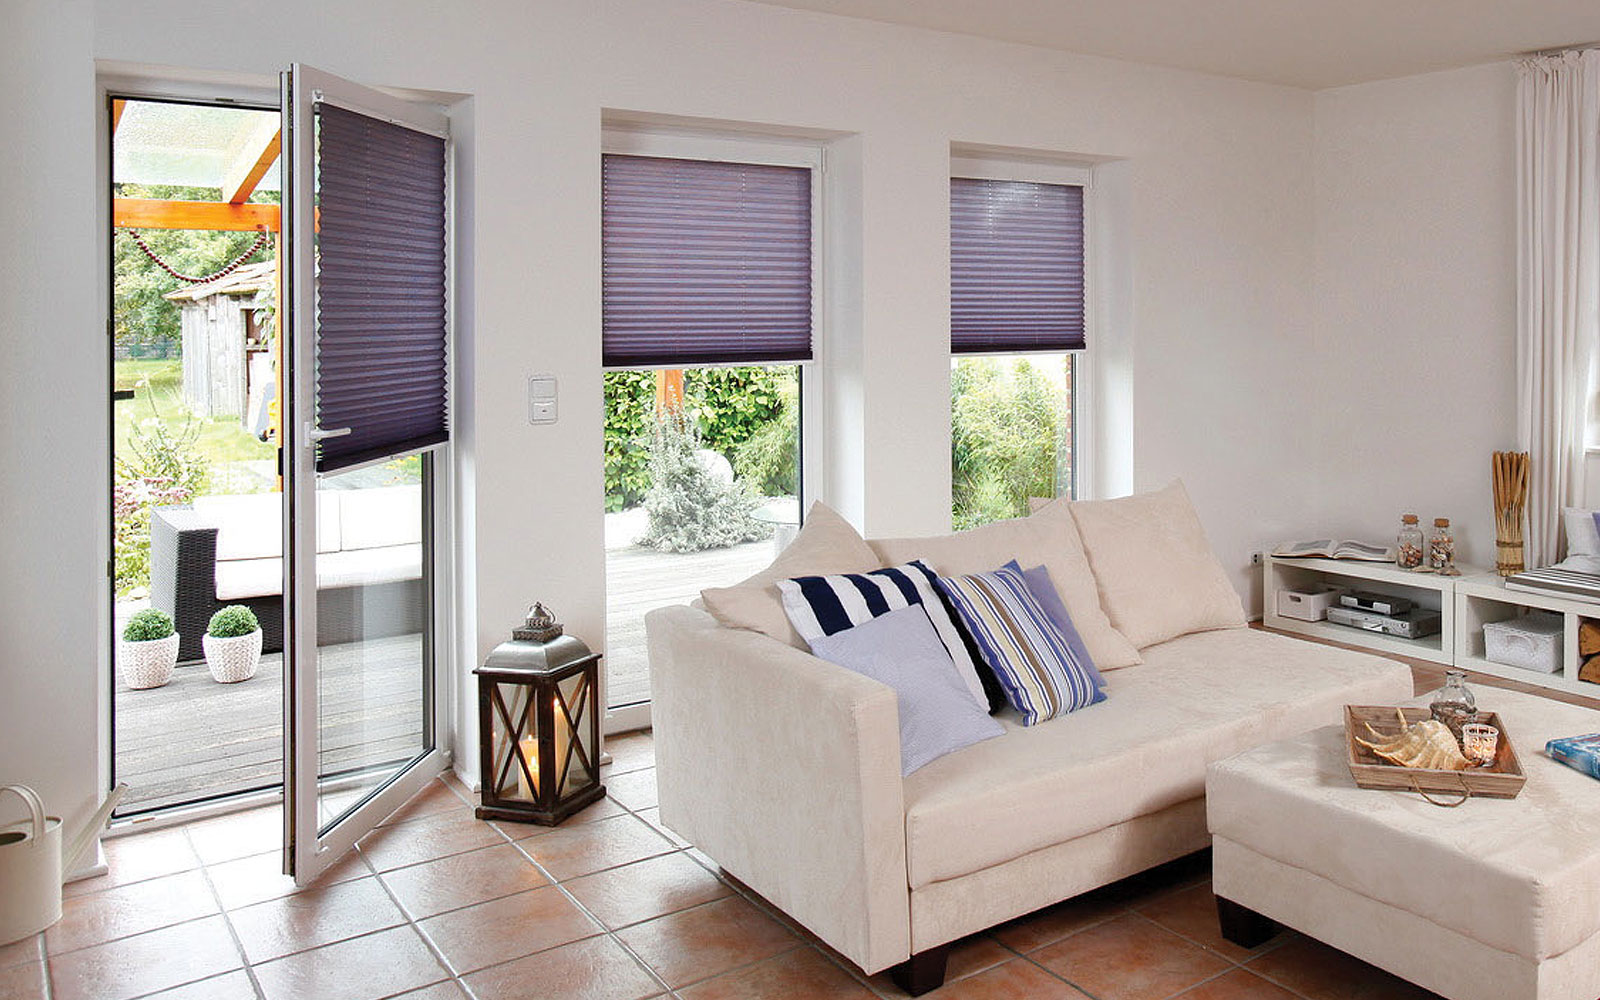 Picture of: Basement Window Blinds Decorations